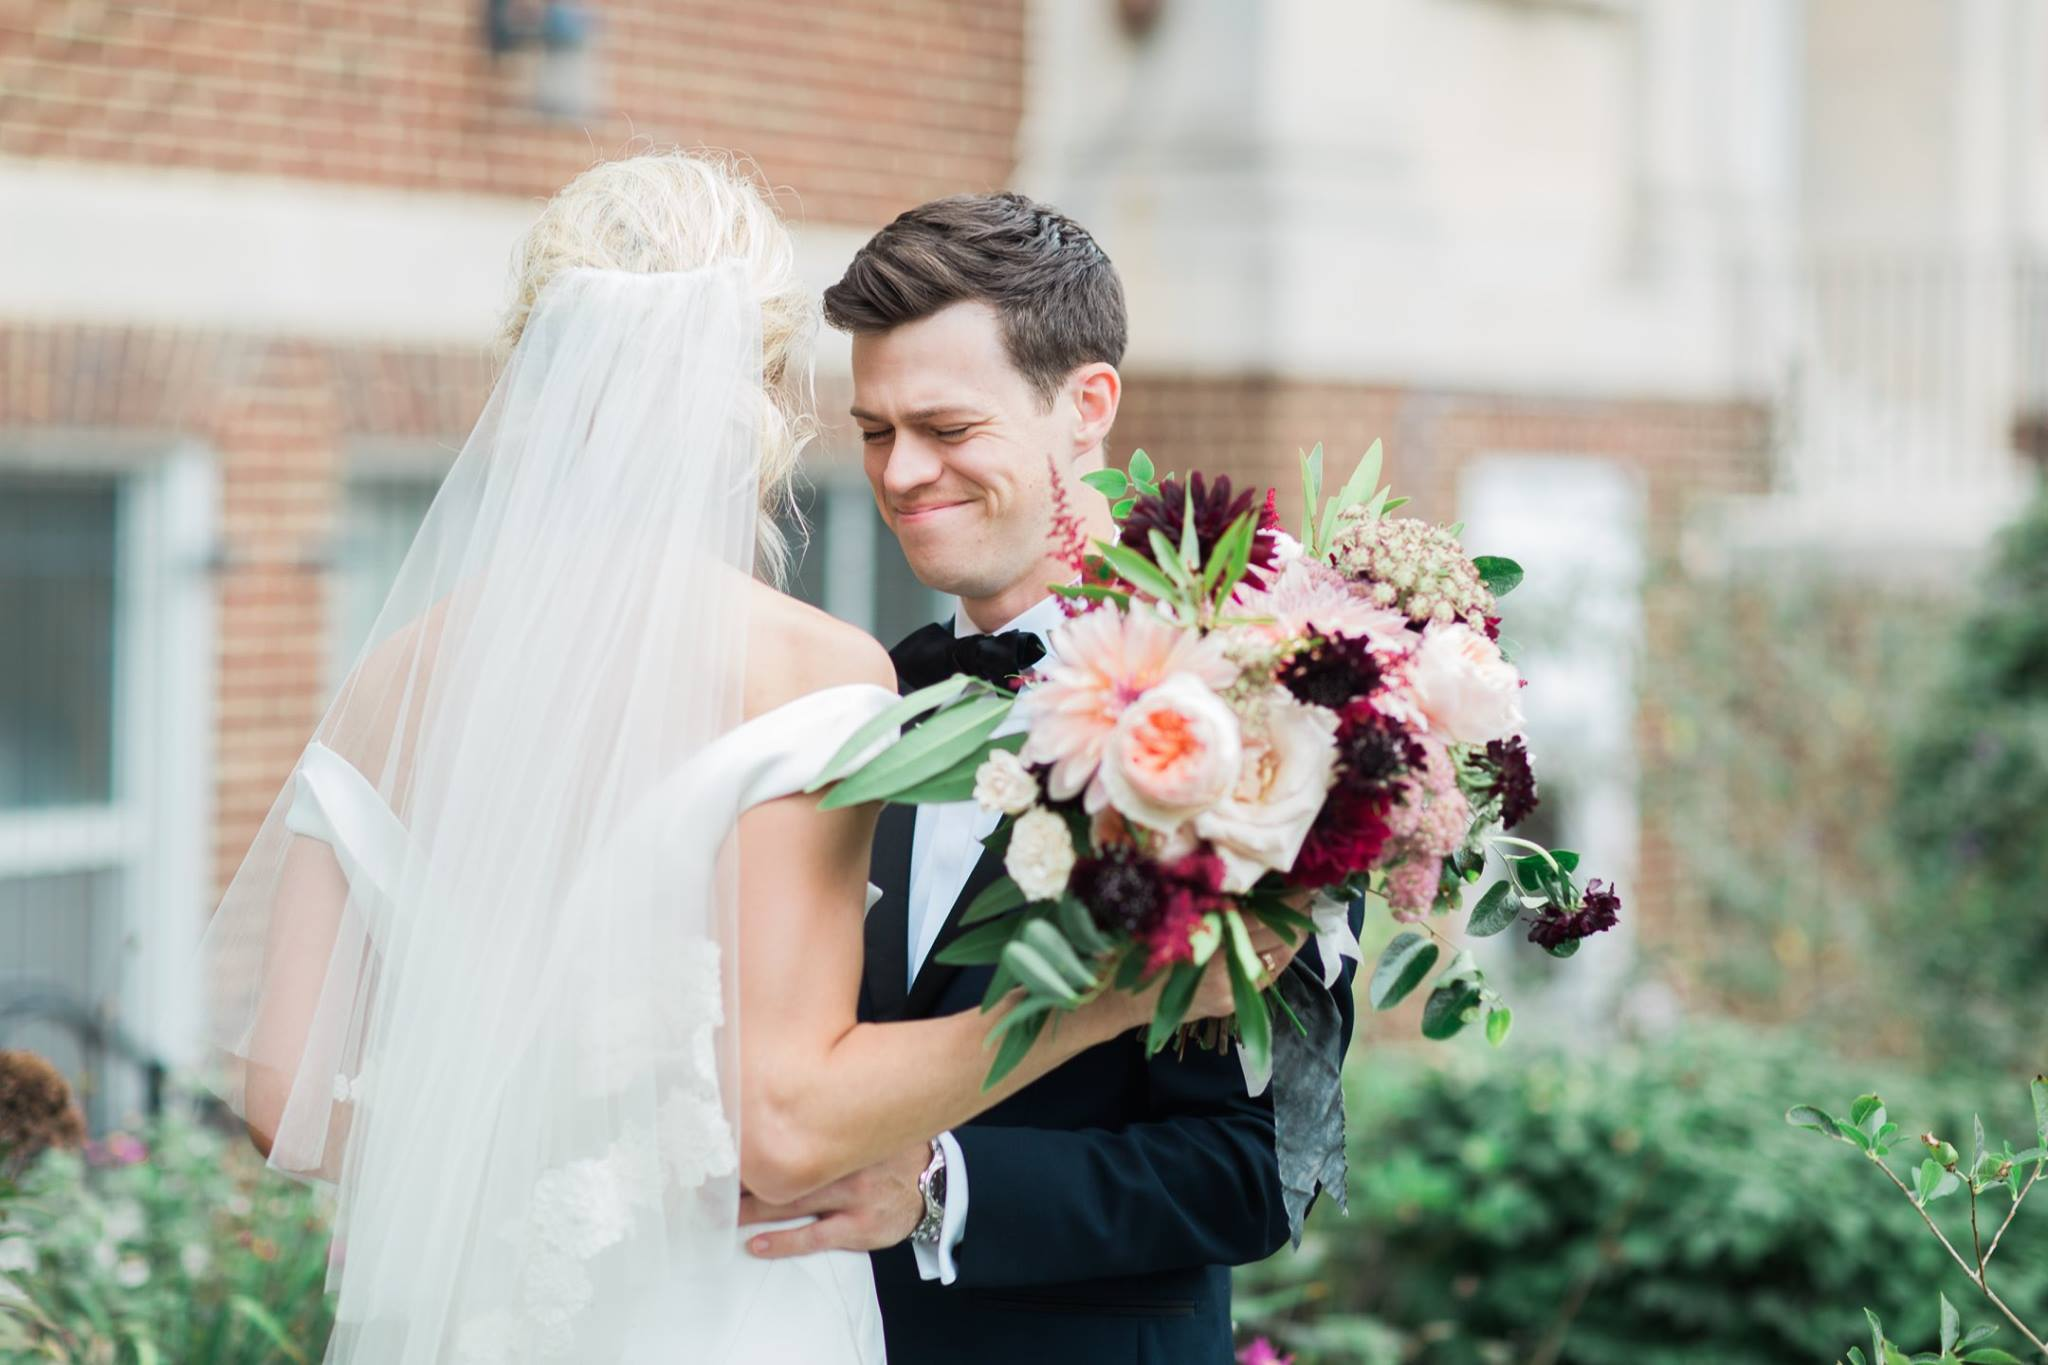 """Having a wedding planner took the hours and hours of logistics and back-and-forth of timelines, negotiations, etc. off our plate,"" said Erica. (Image: Abby Grace Photography/ abbygracephotography.com)"